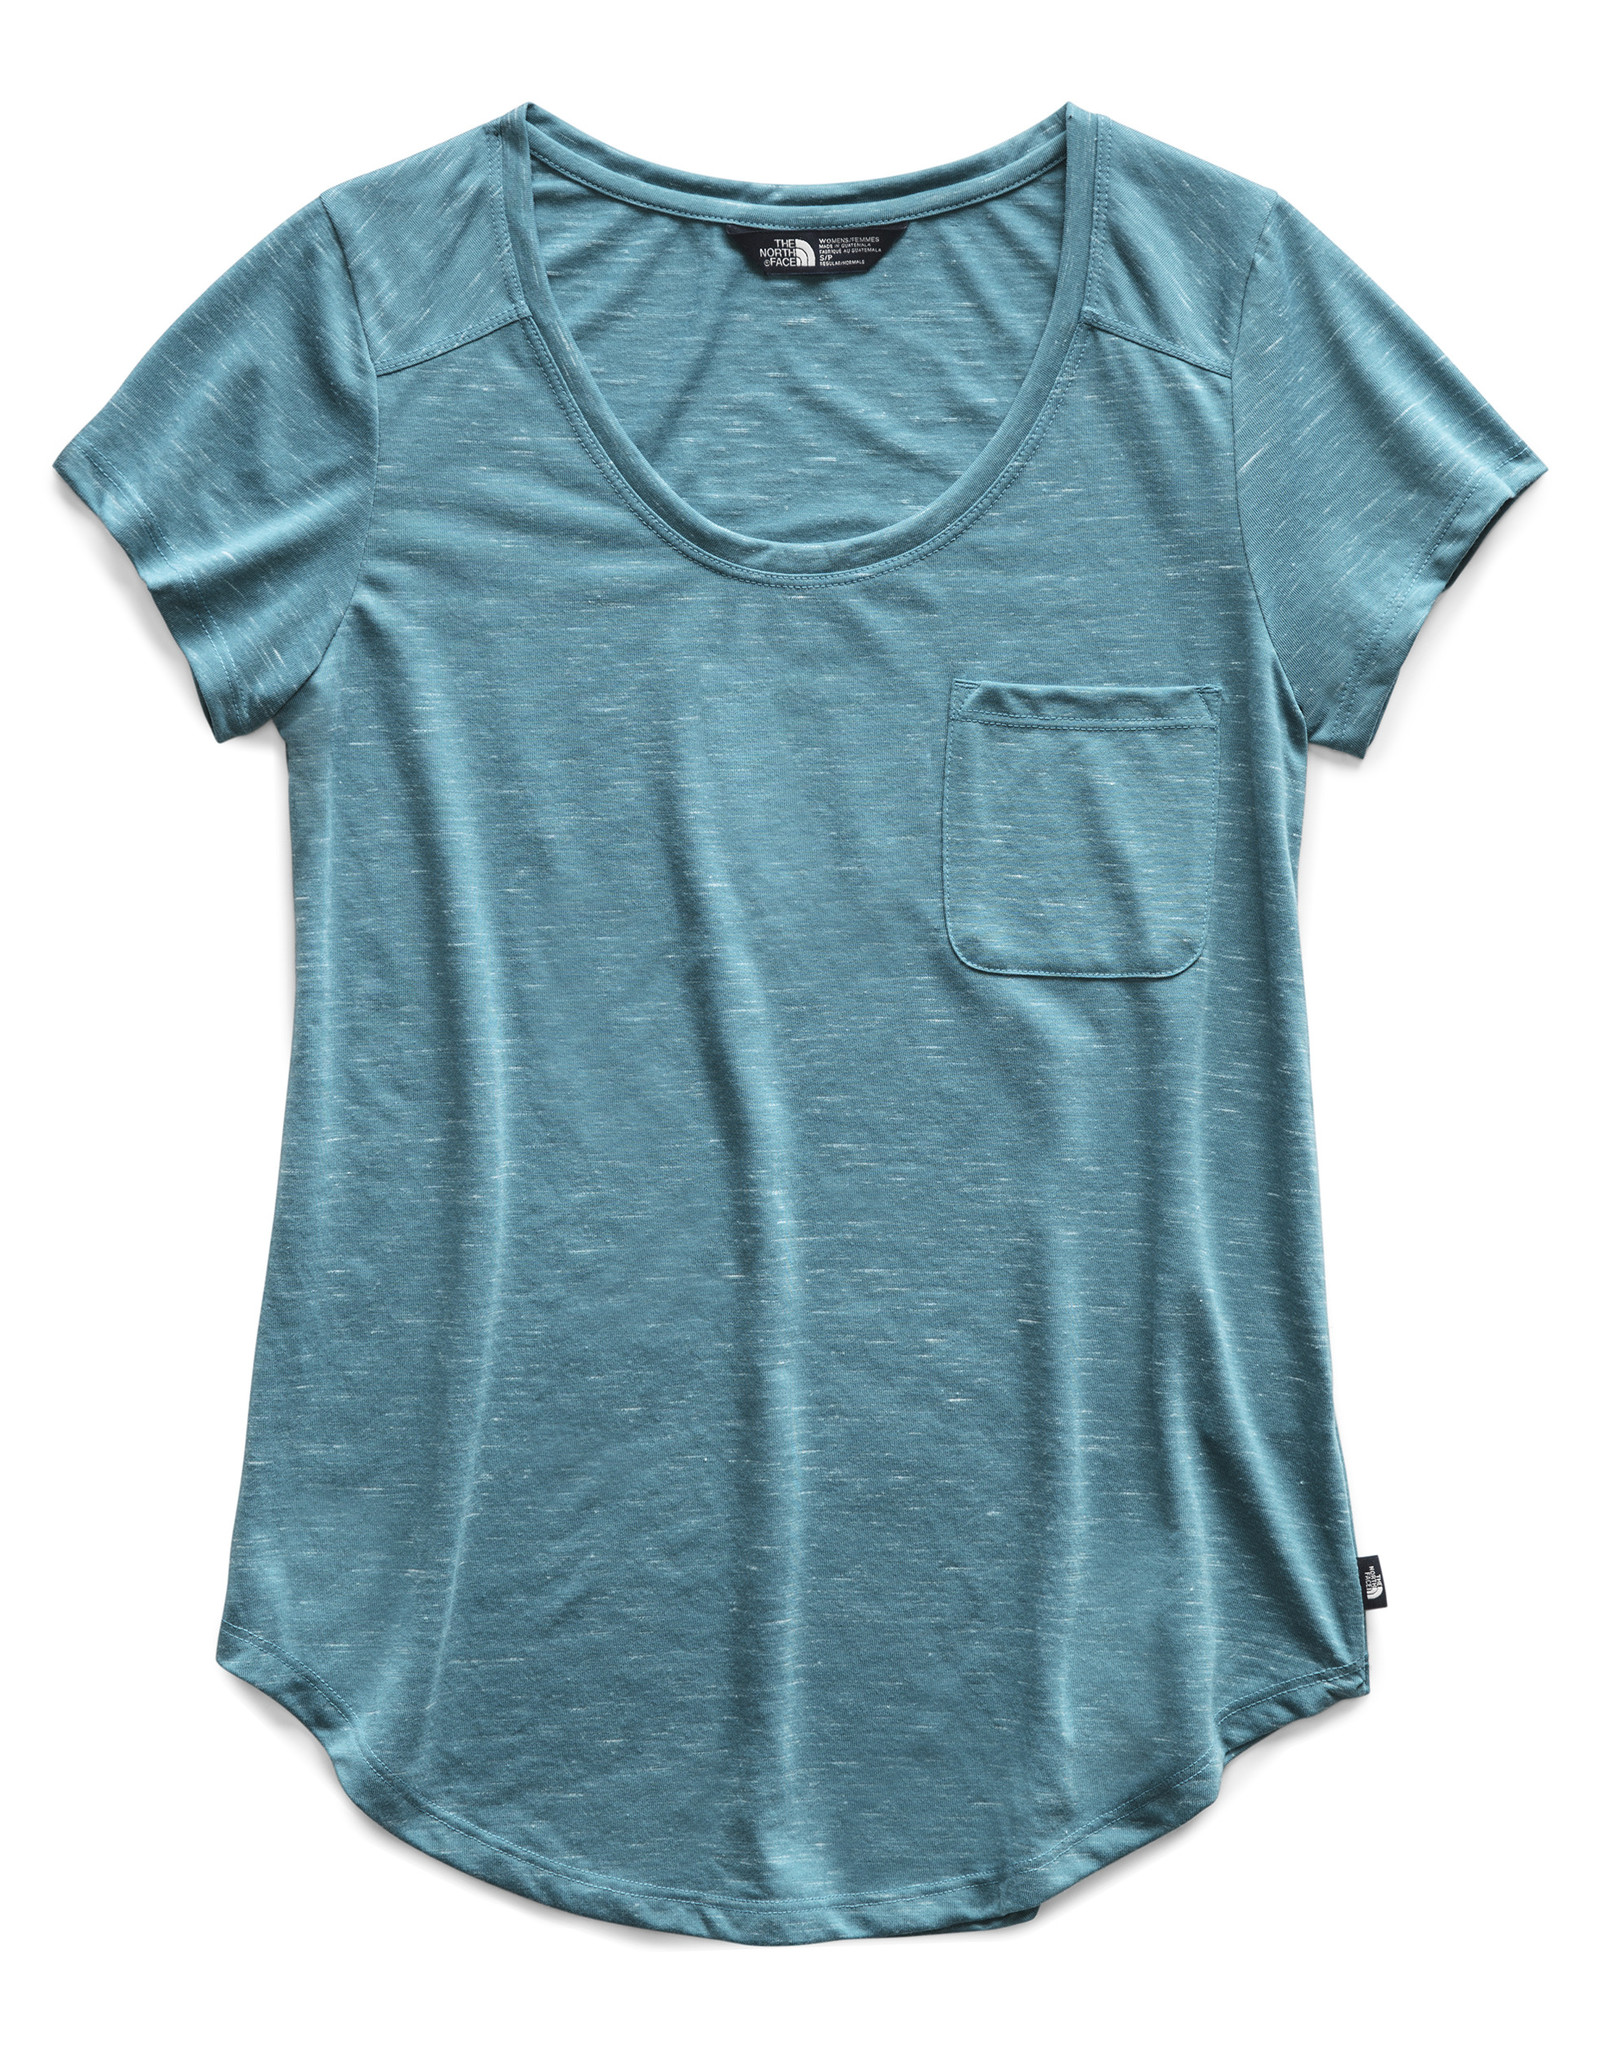 The North Face The North Face Women's S/S Boulder Peak Top - S2019